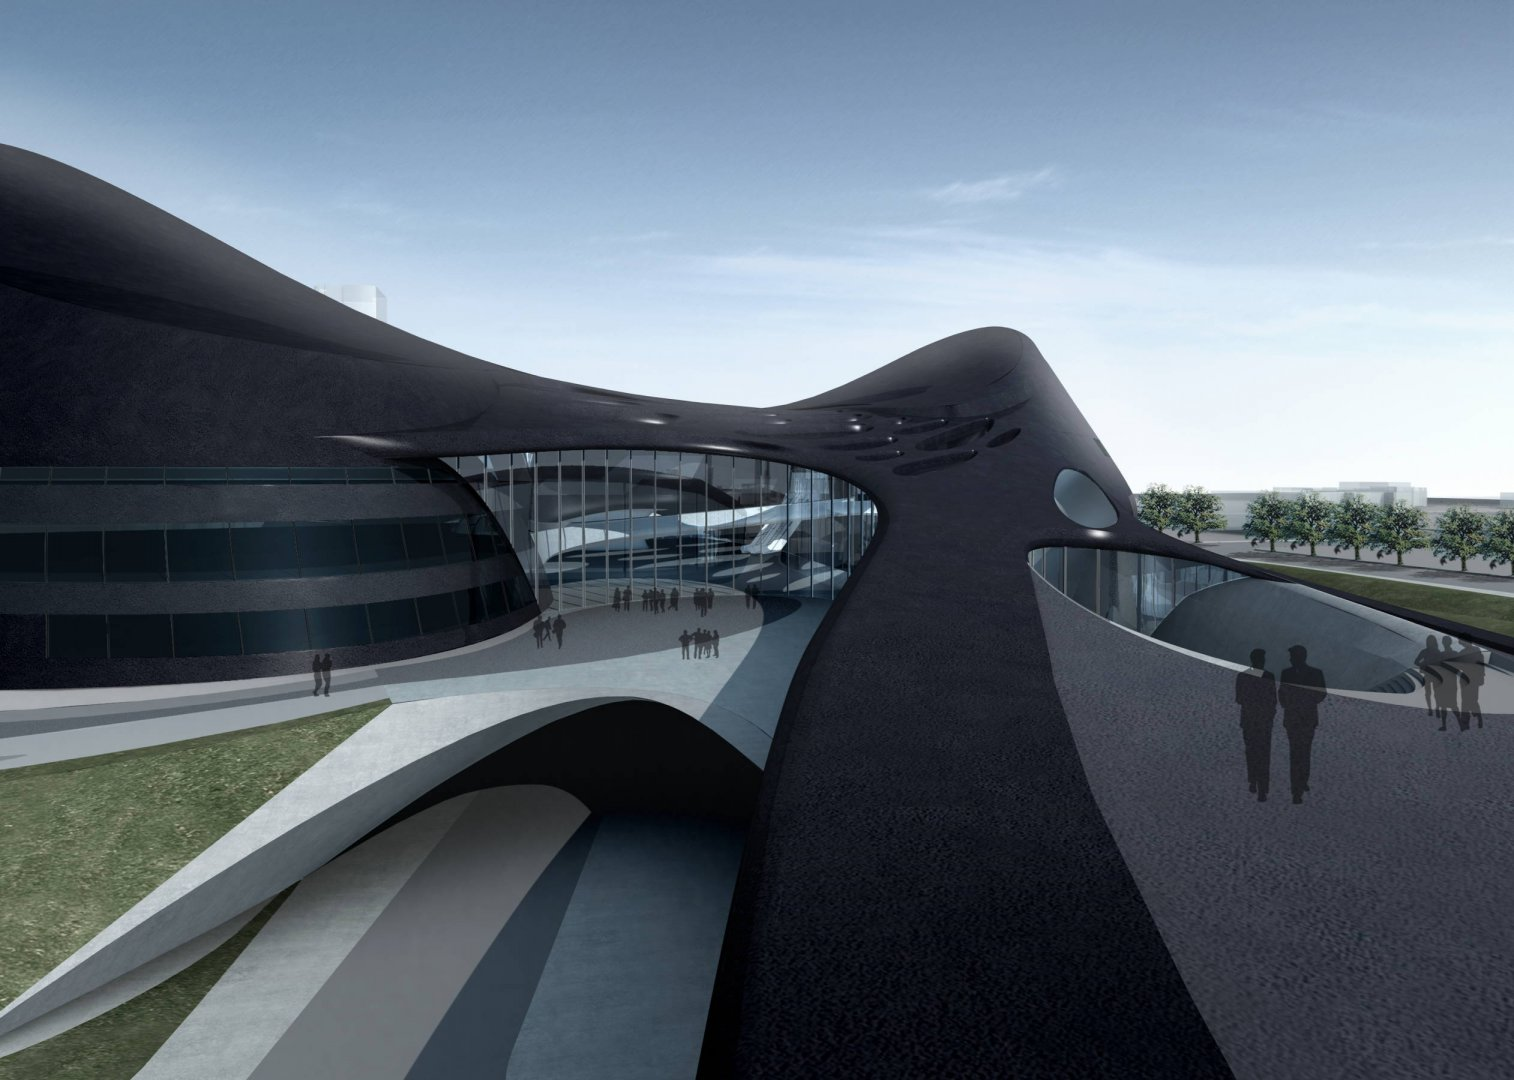 modern cabinet architecture taichung metropolitan opera house by zaha hadid architects. Black Bedroom Furniture Sets. Home Design Ideas